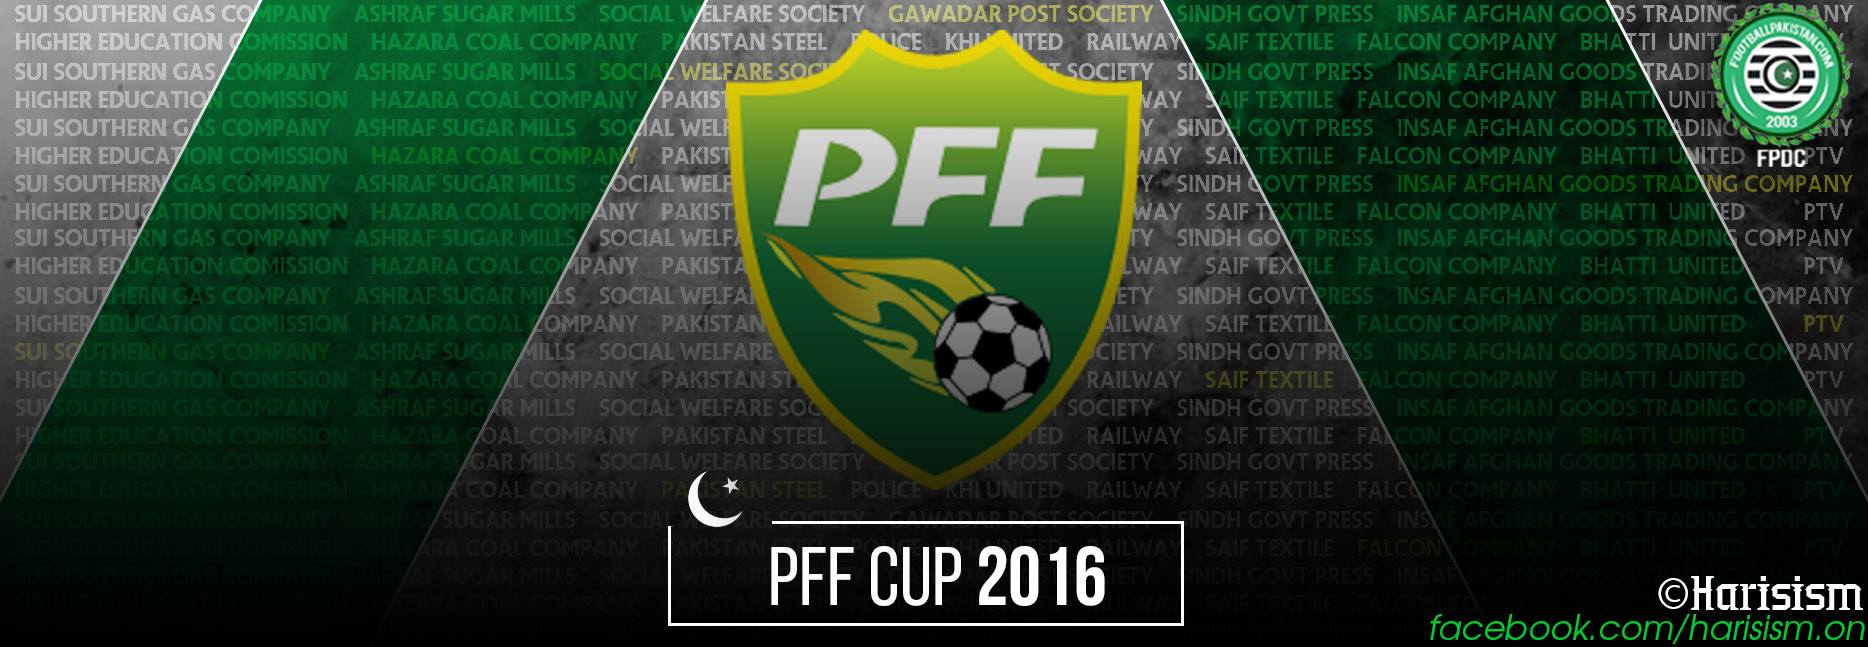 PFF Cup continues despite threats of disciplinary action; Karachi United, Police win [Express Tribune, Dawn]